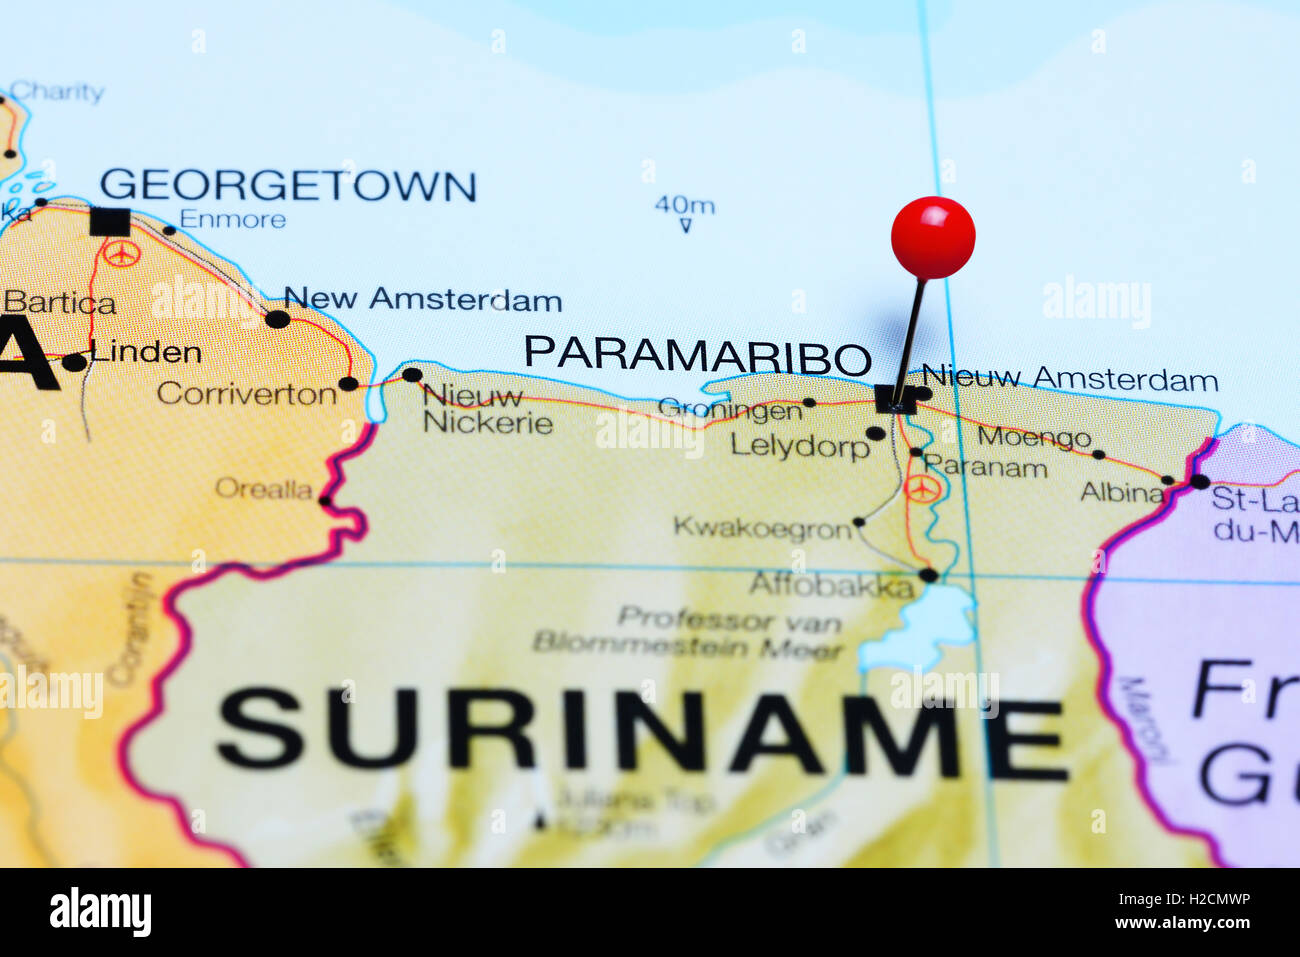 Paramaribo pinned on a map of Suriname - Stock Image